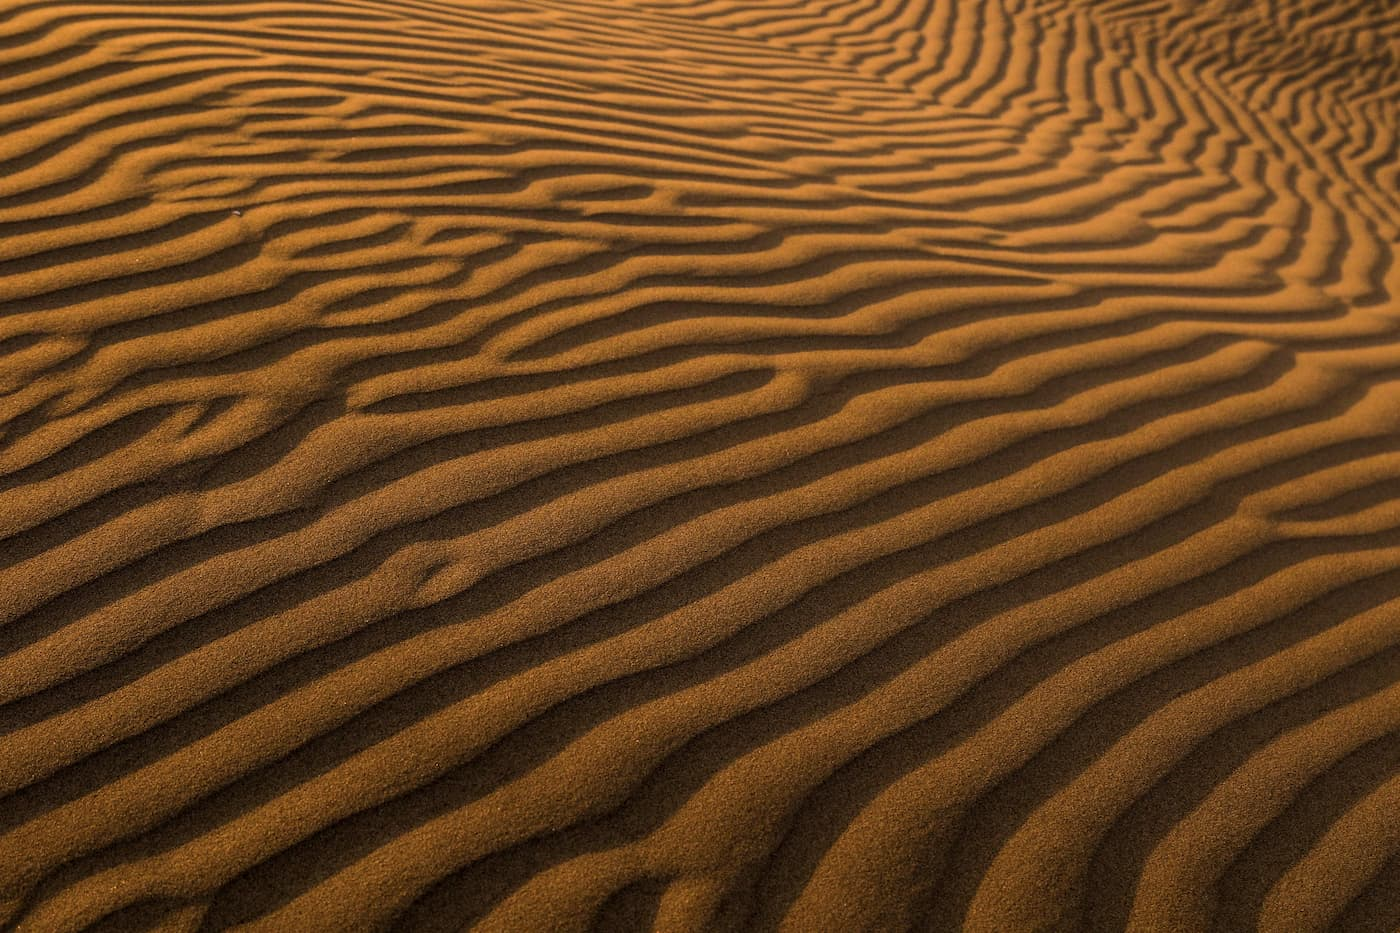 A pattern formed in sand dunes by wind.